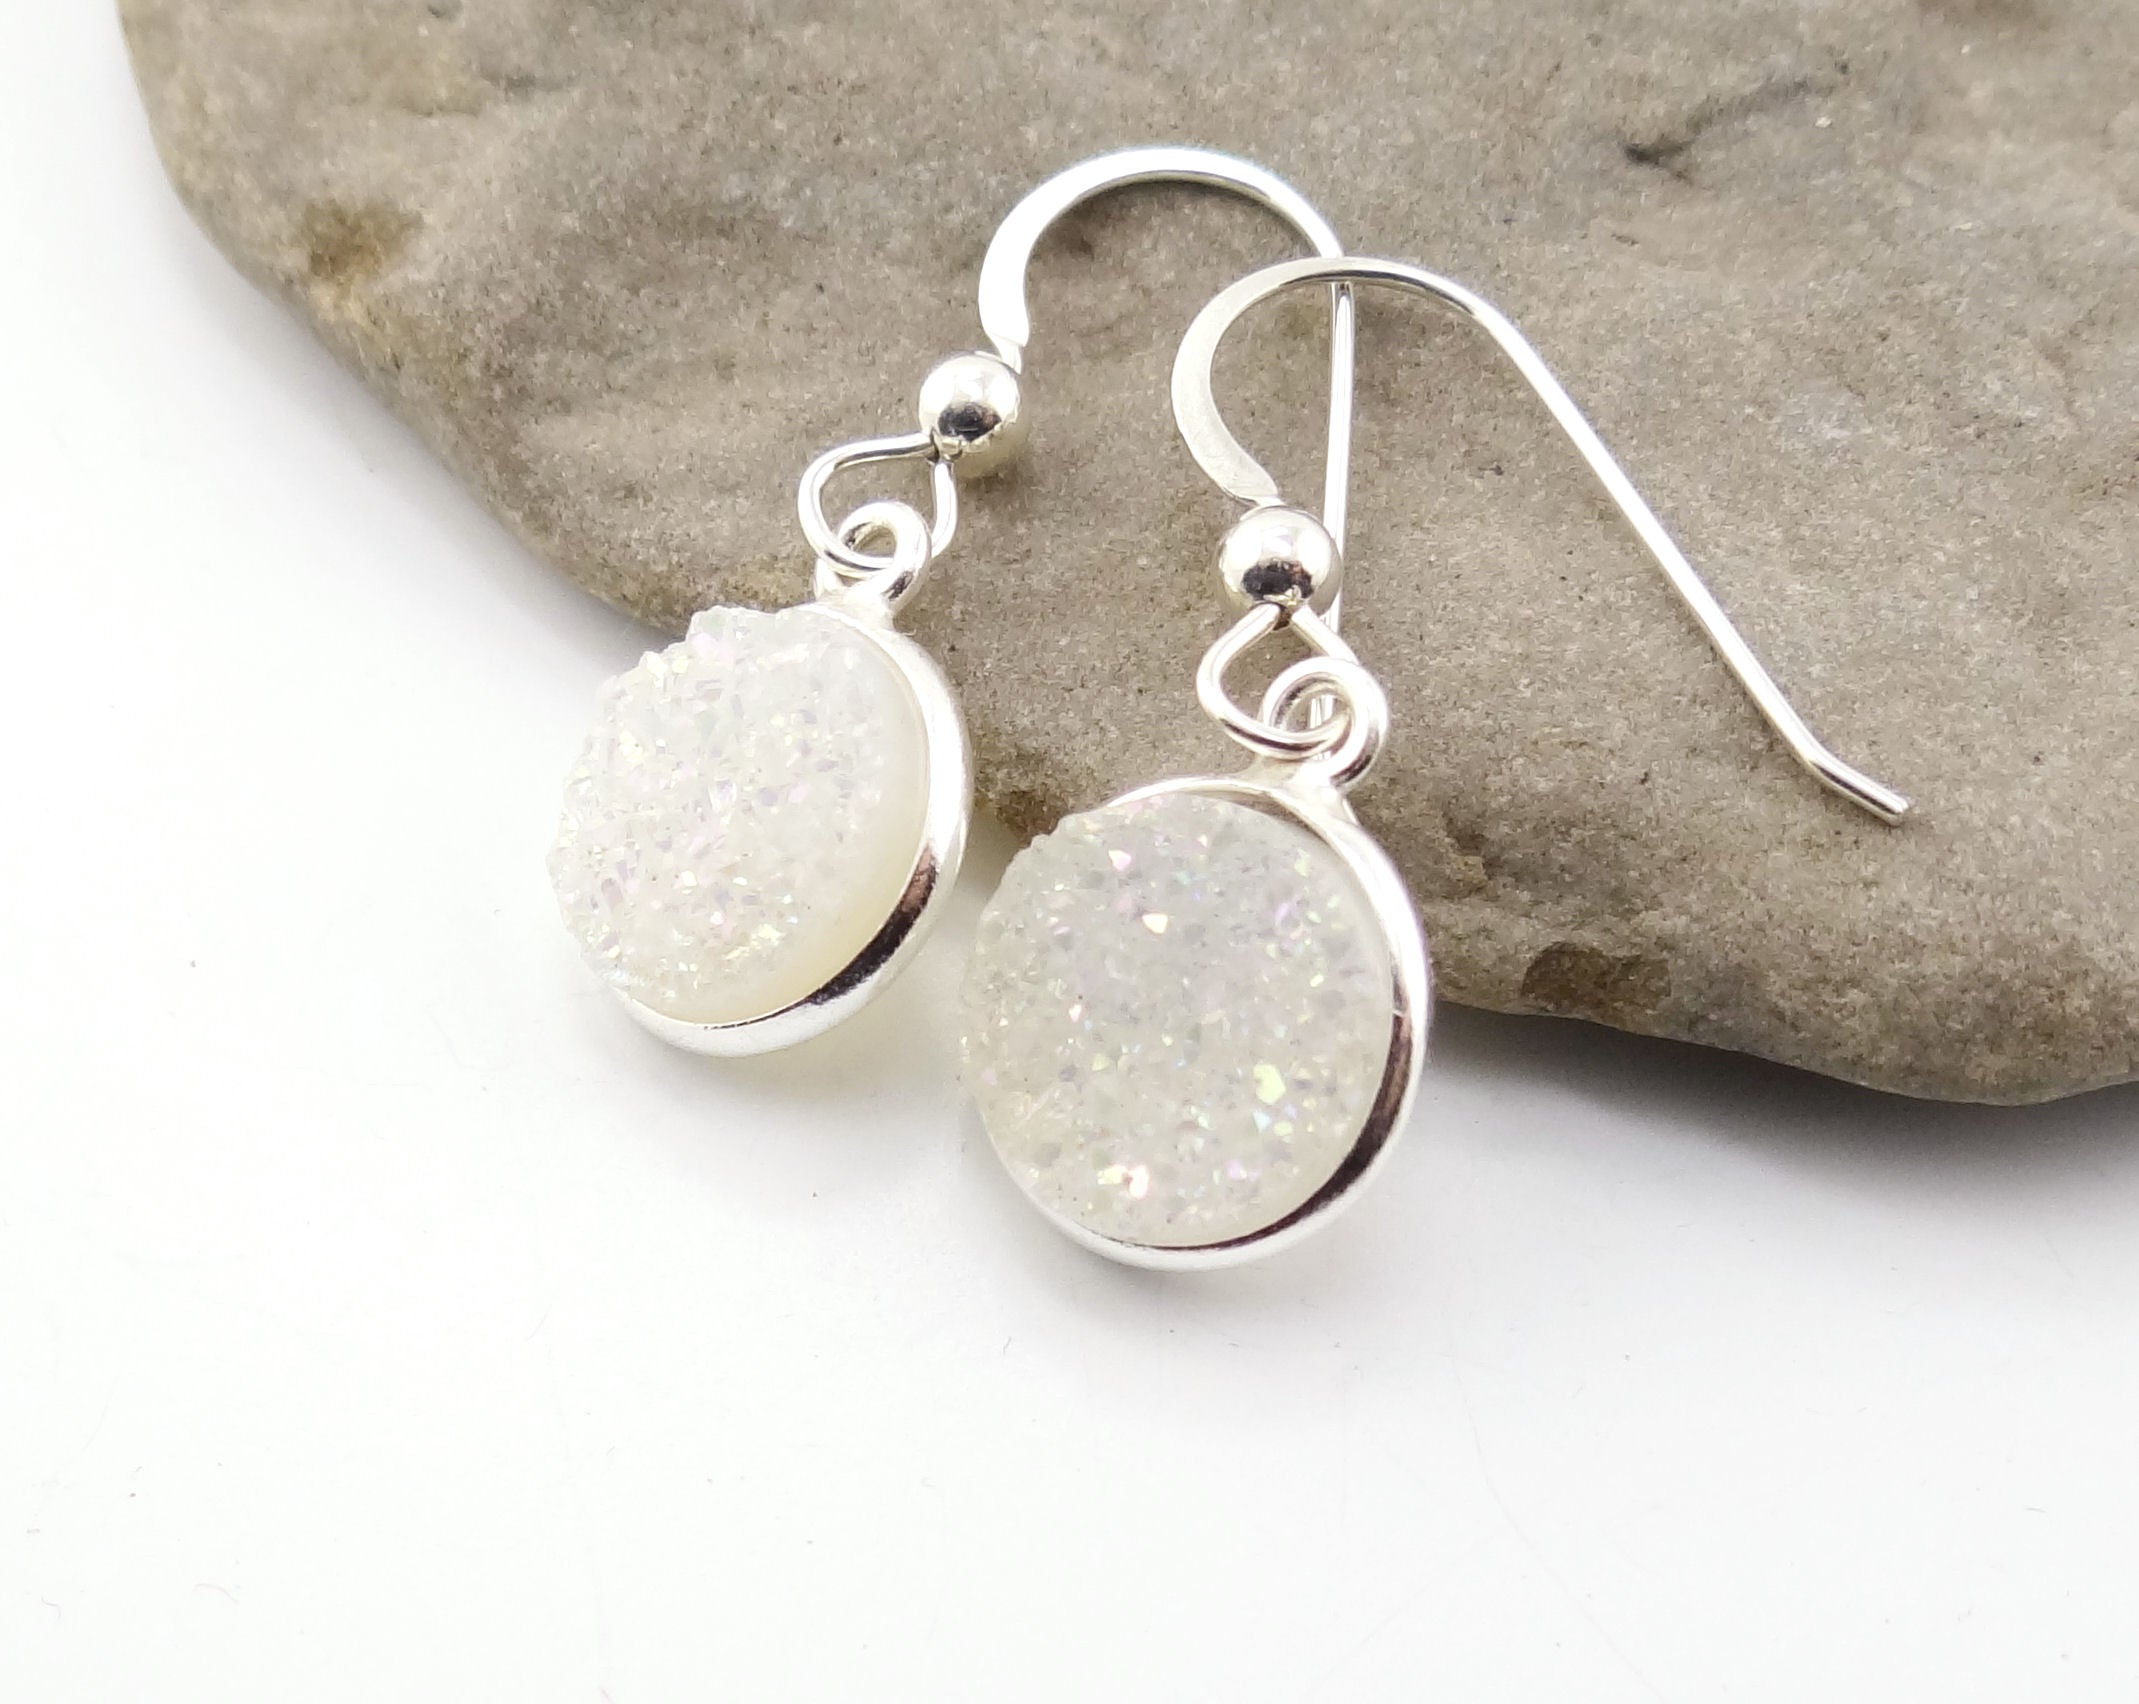 Round Druzy Earrings Iridescent Opal With Silver Trim